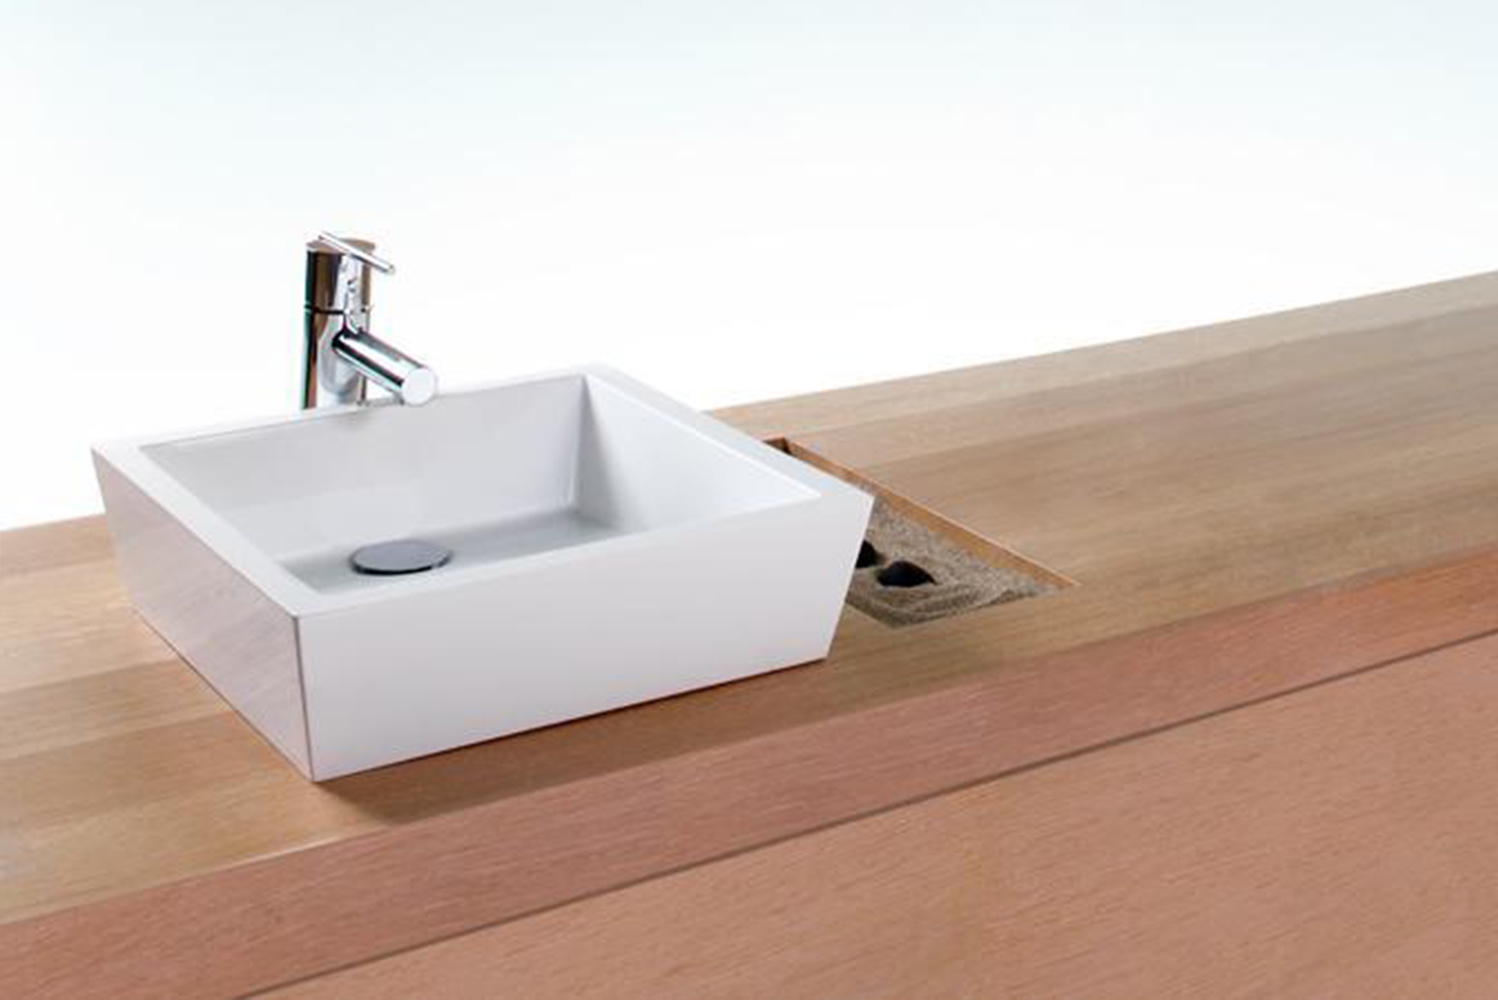 Featuring slender walls, built with WETSTYLE's proprietary WETMAR BiO material, the sinks offer a soft-to-the-touch finish and enhanced cleaning capabilities.